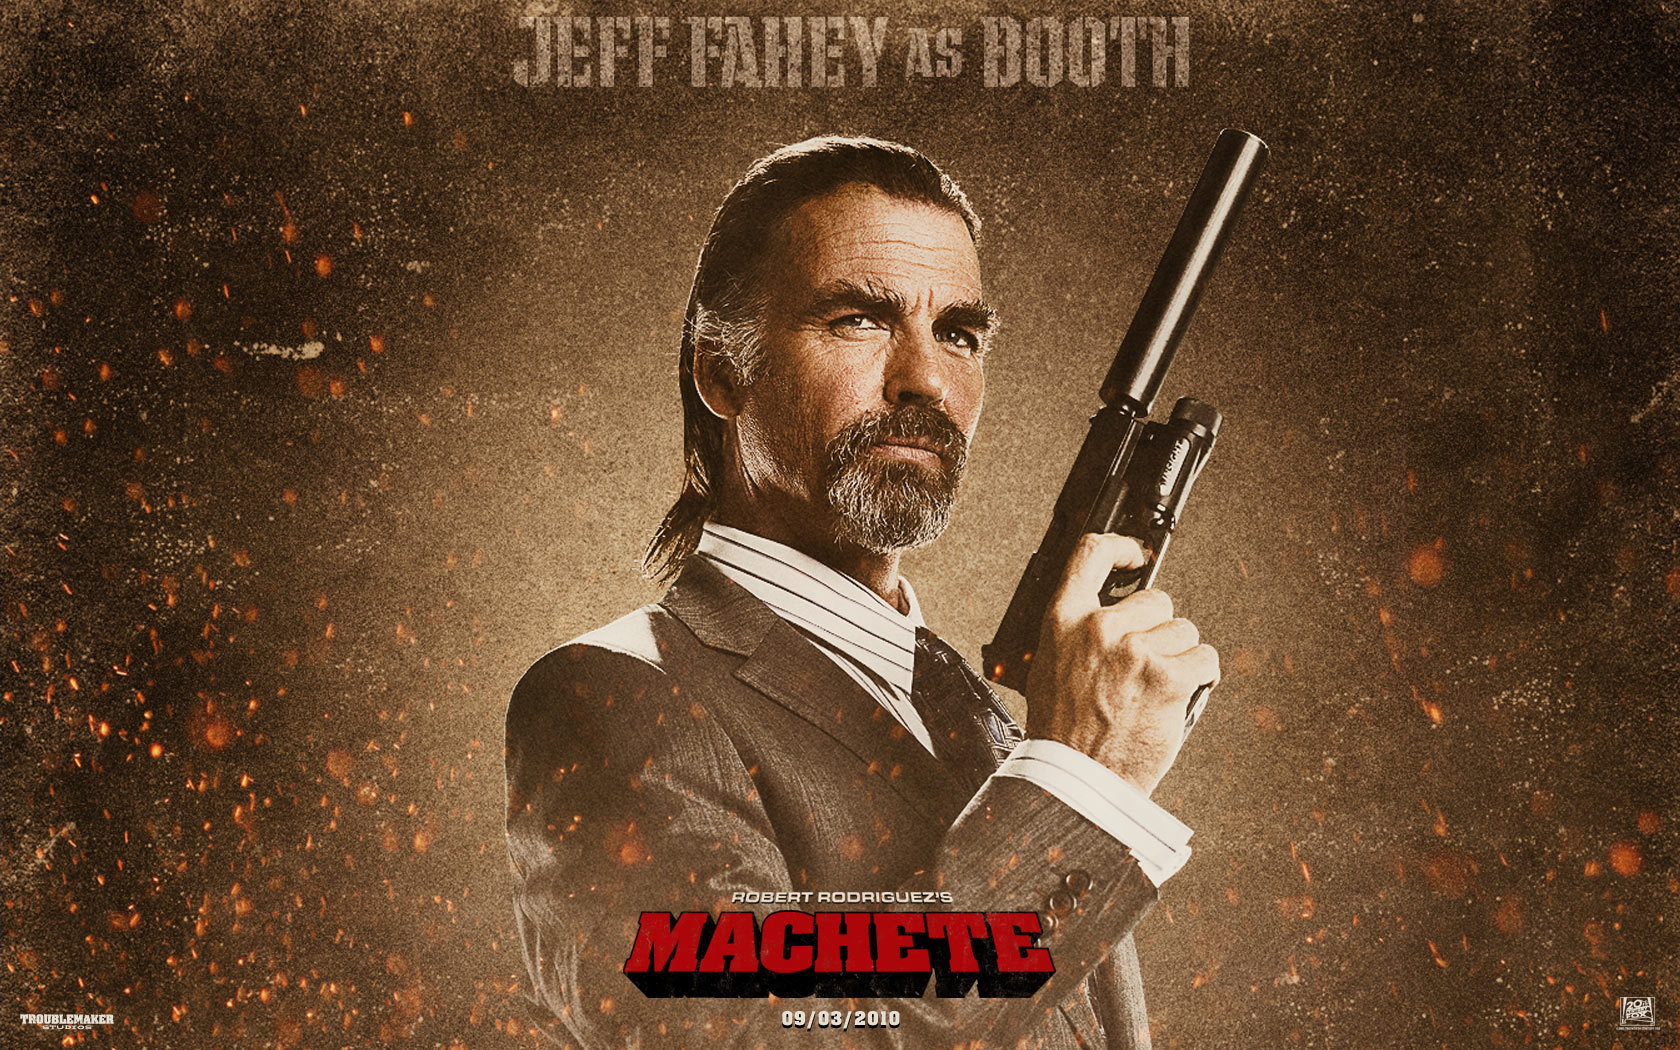 the marshall jeff fahey